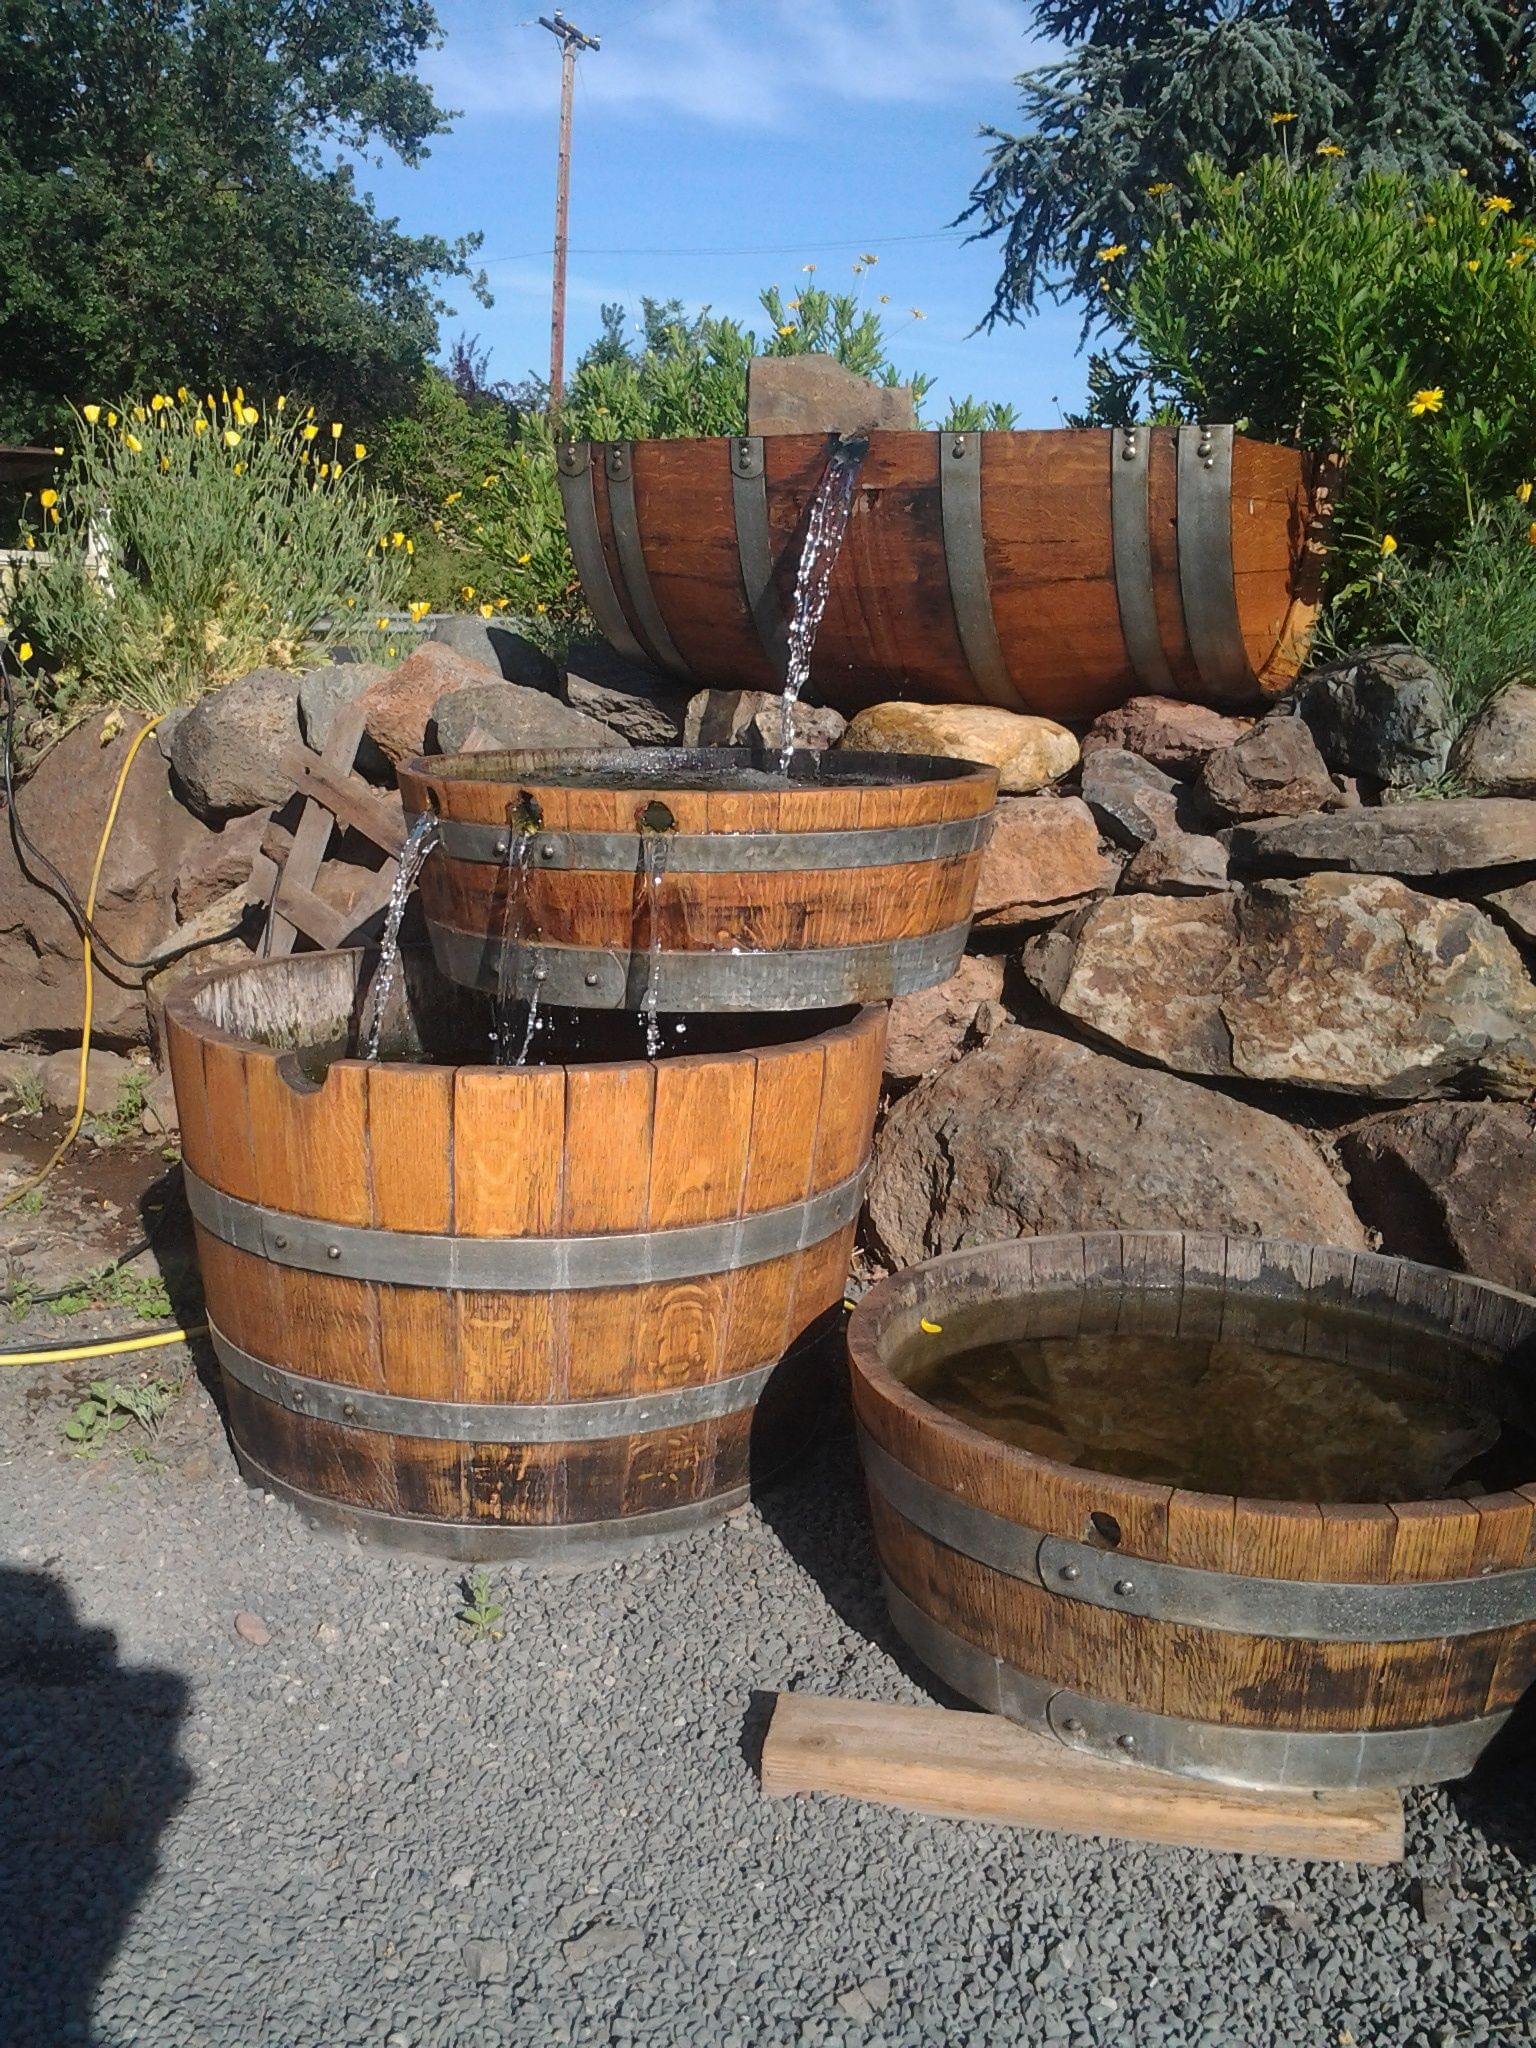 Triple Trough Fountain 575 00 Barrel Fountain Garden Gates And Fencing Recycled Wine Barrels